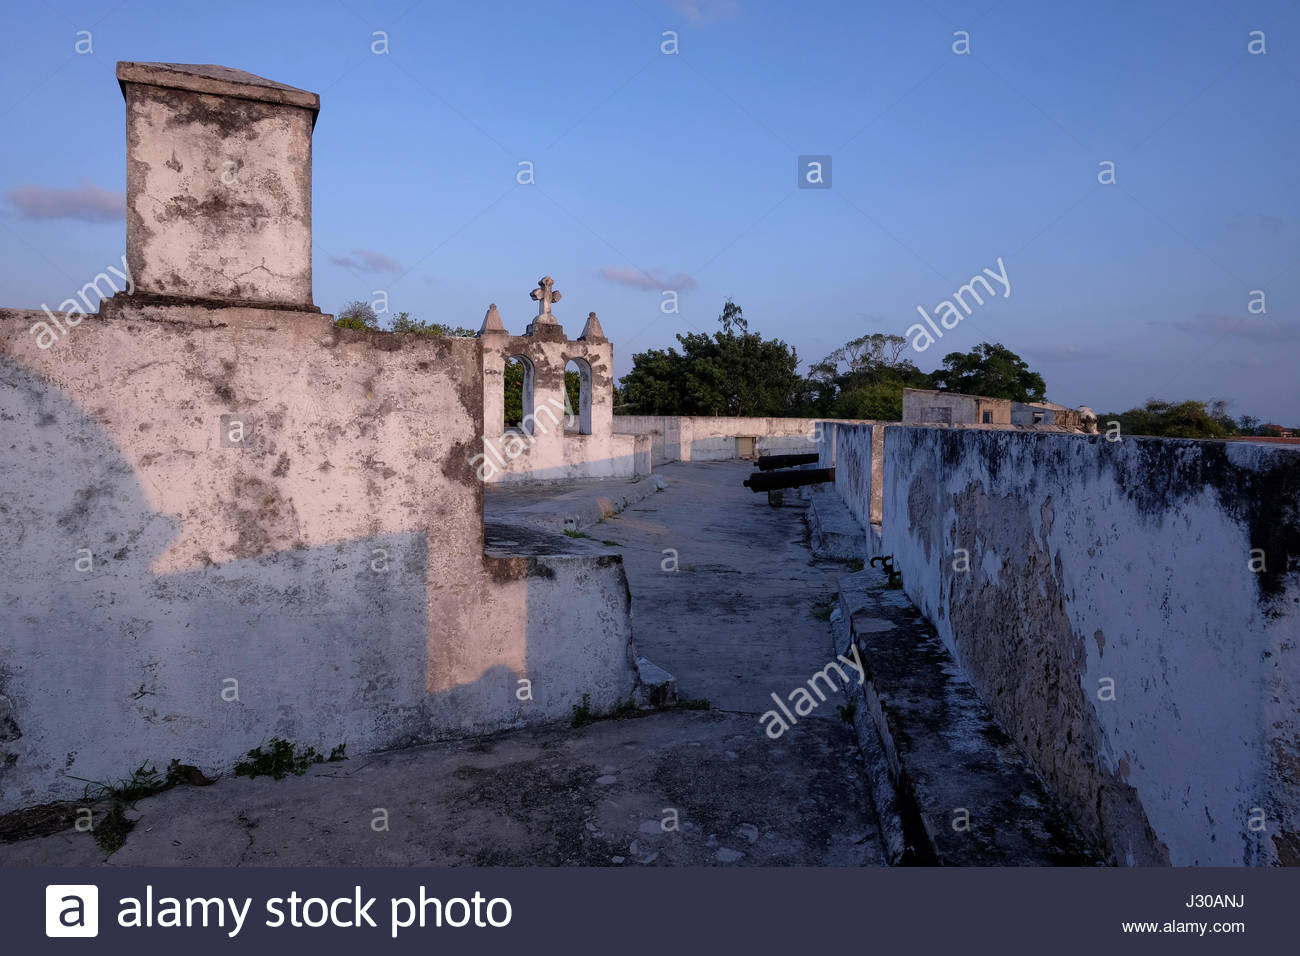 Fort of São João Baptista Ibo Island, View of the 17th century Fort of Sao Joao Batista (St. John ...